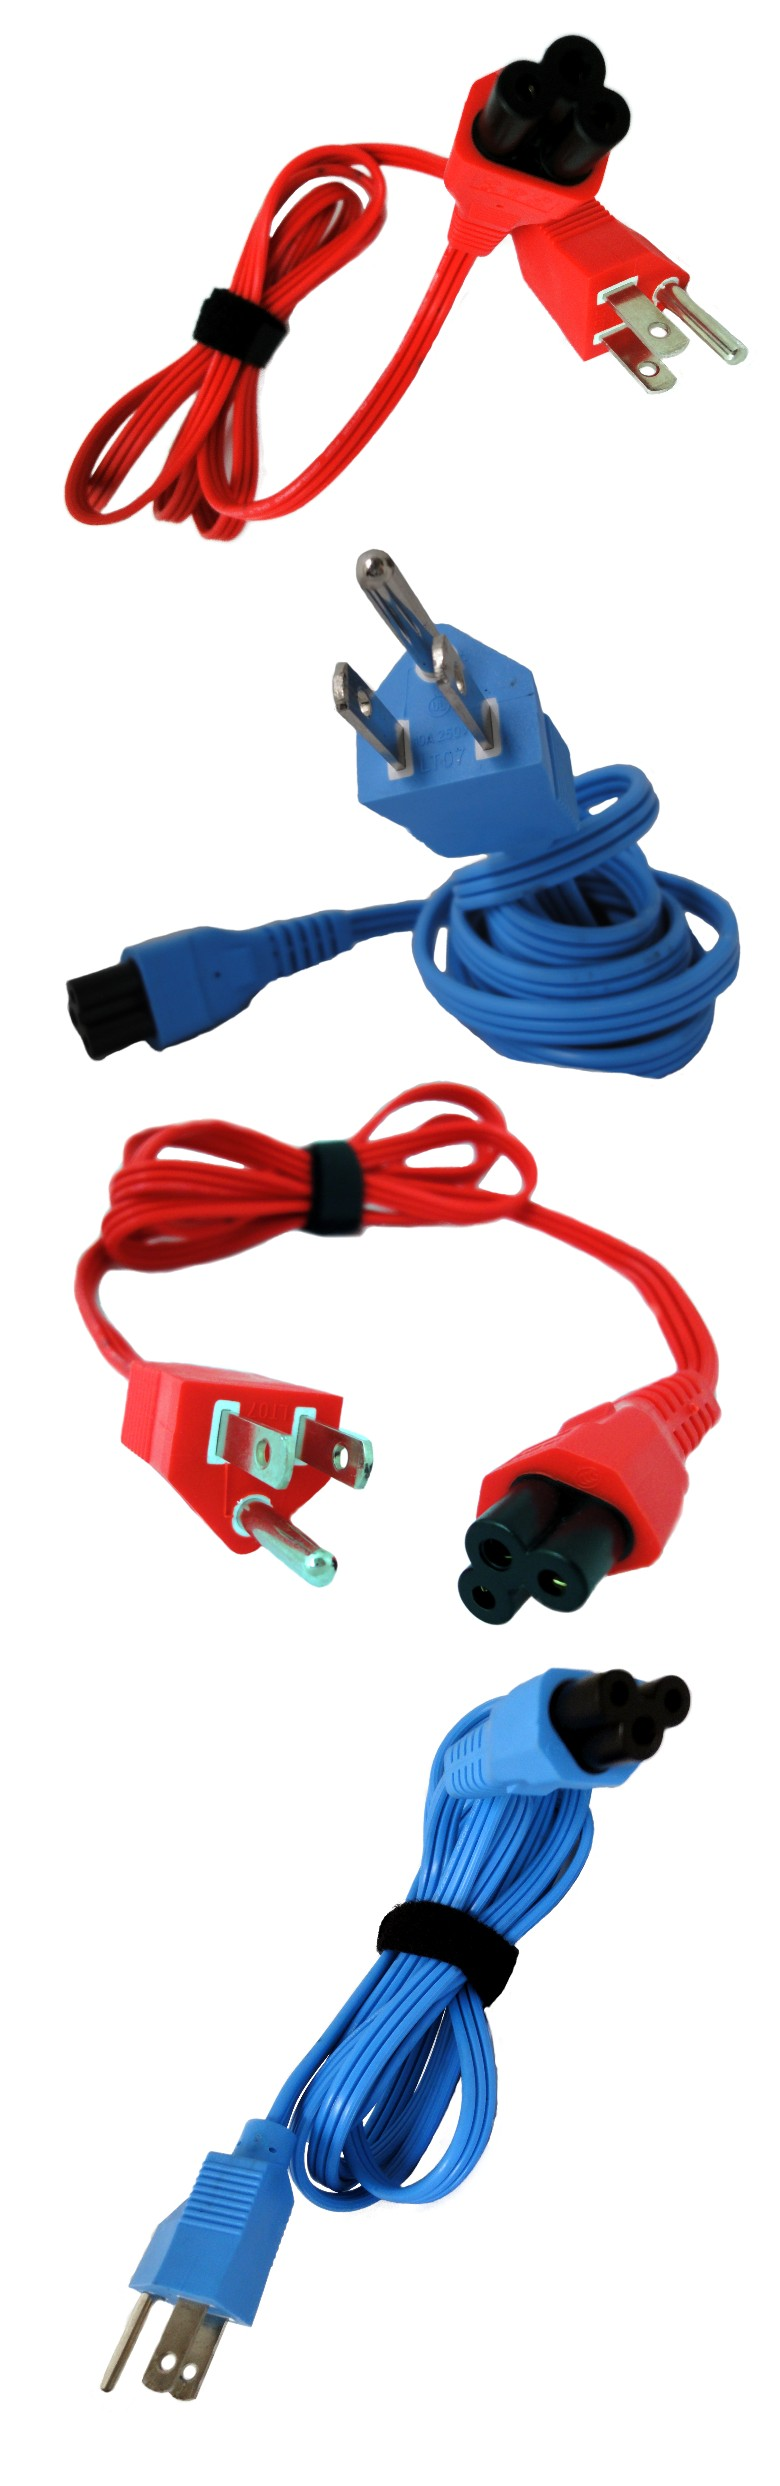 Dorable Power Cable Colors Collection - Best Images for wiring ...